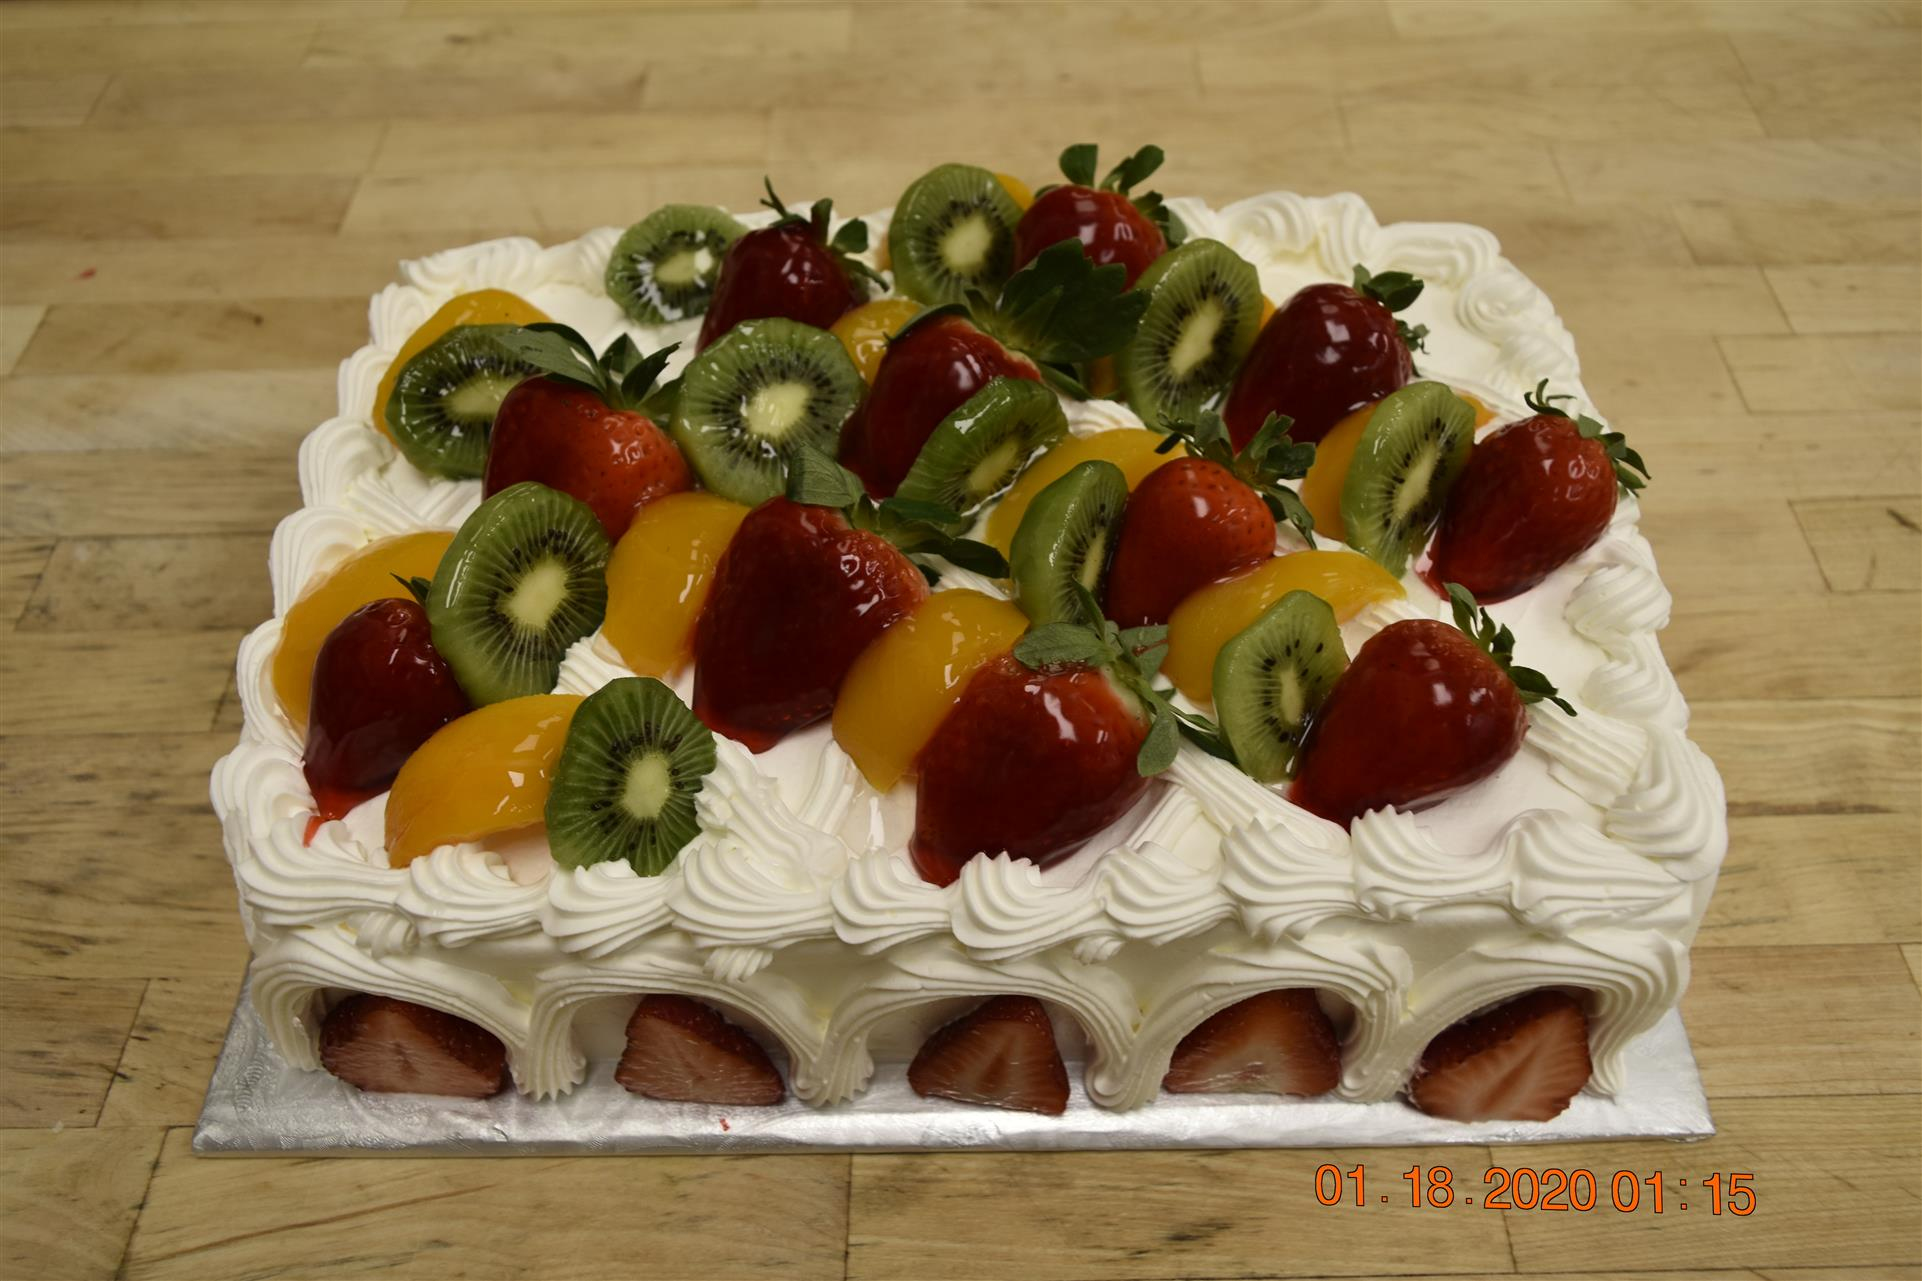 vanilla cake topped with strawberries, kiwis, and peaches